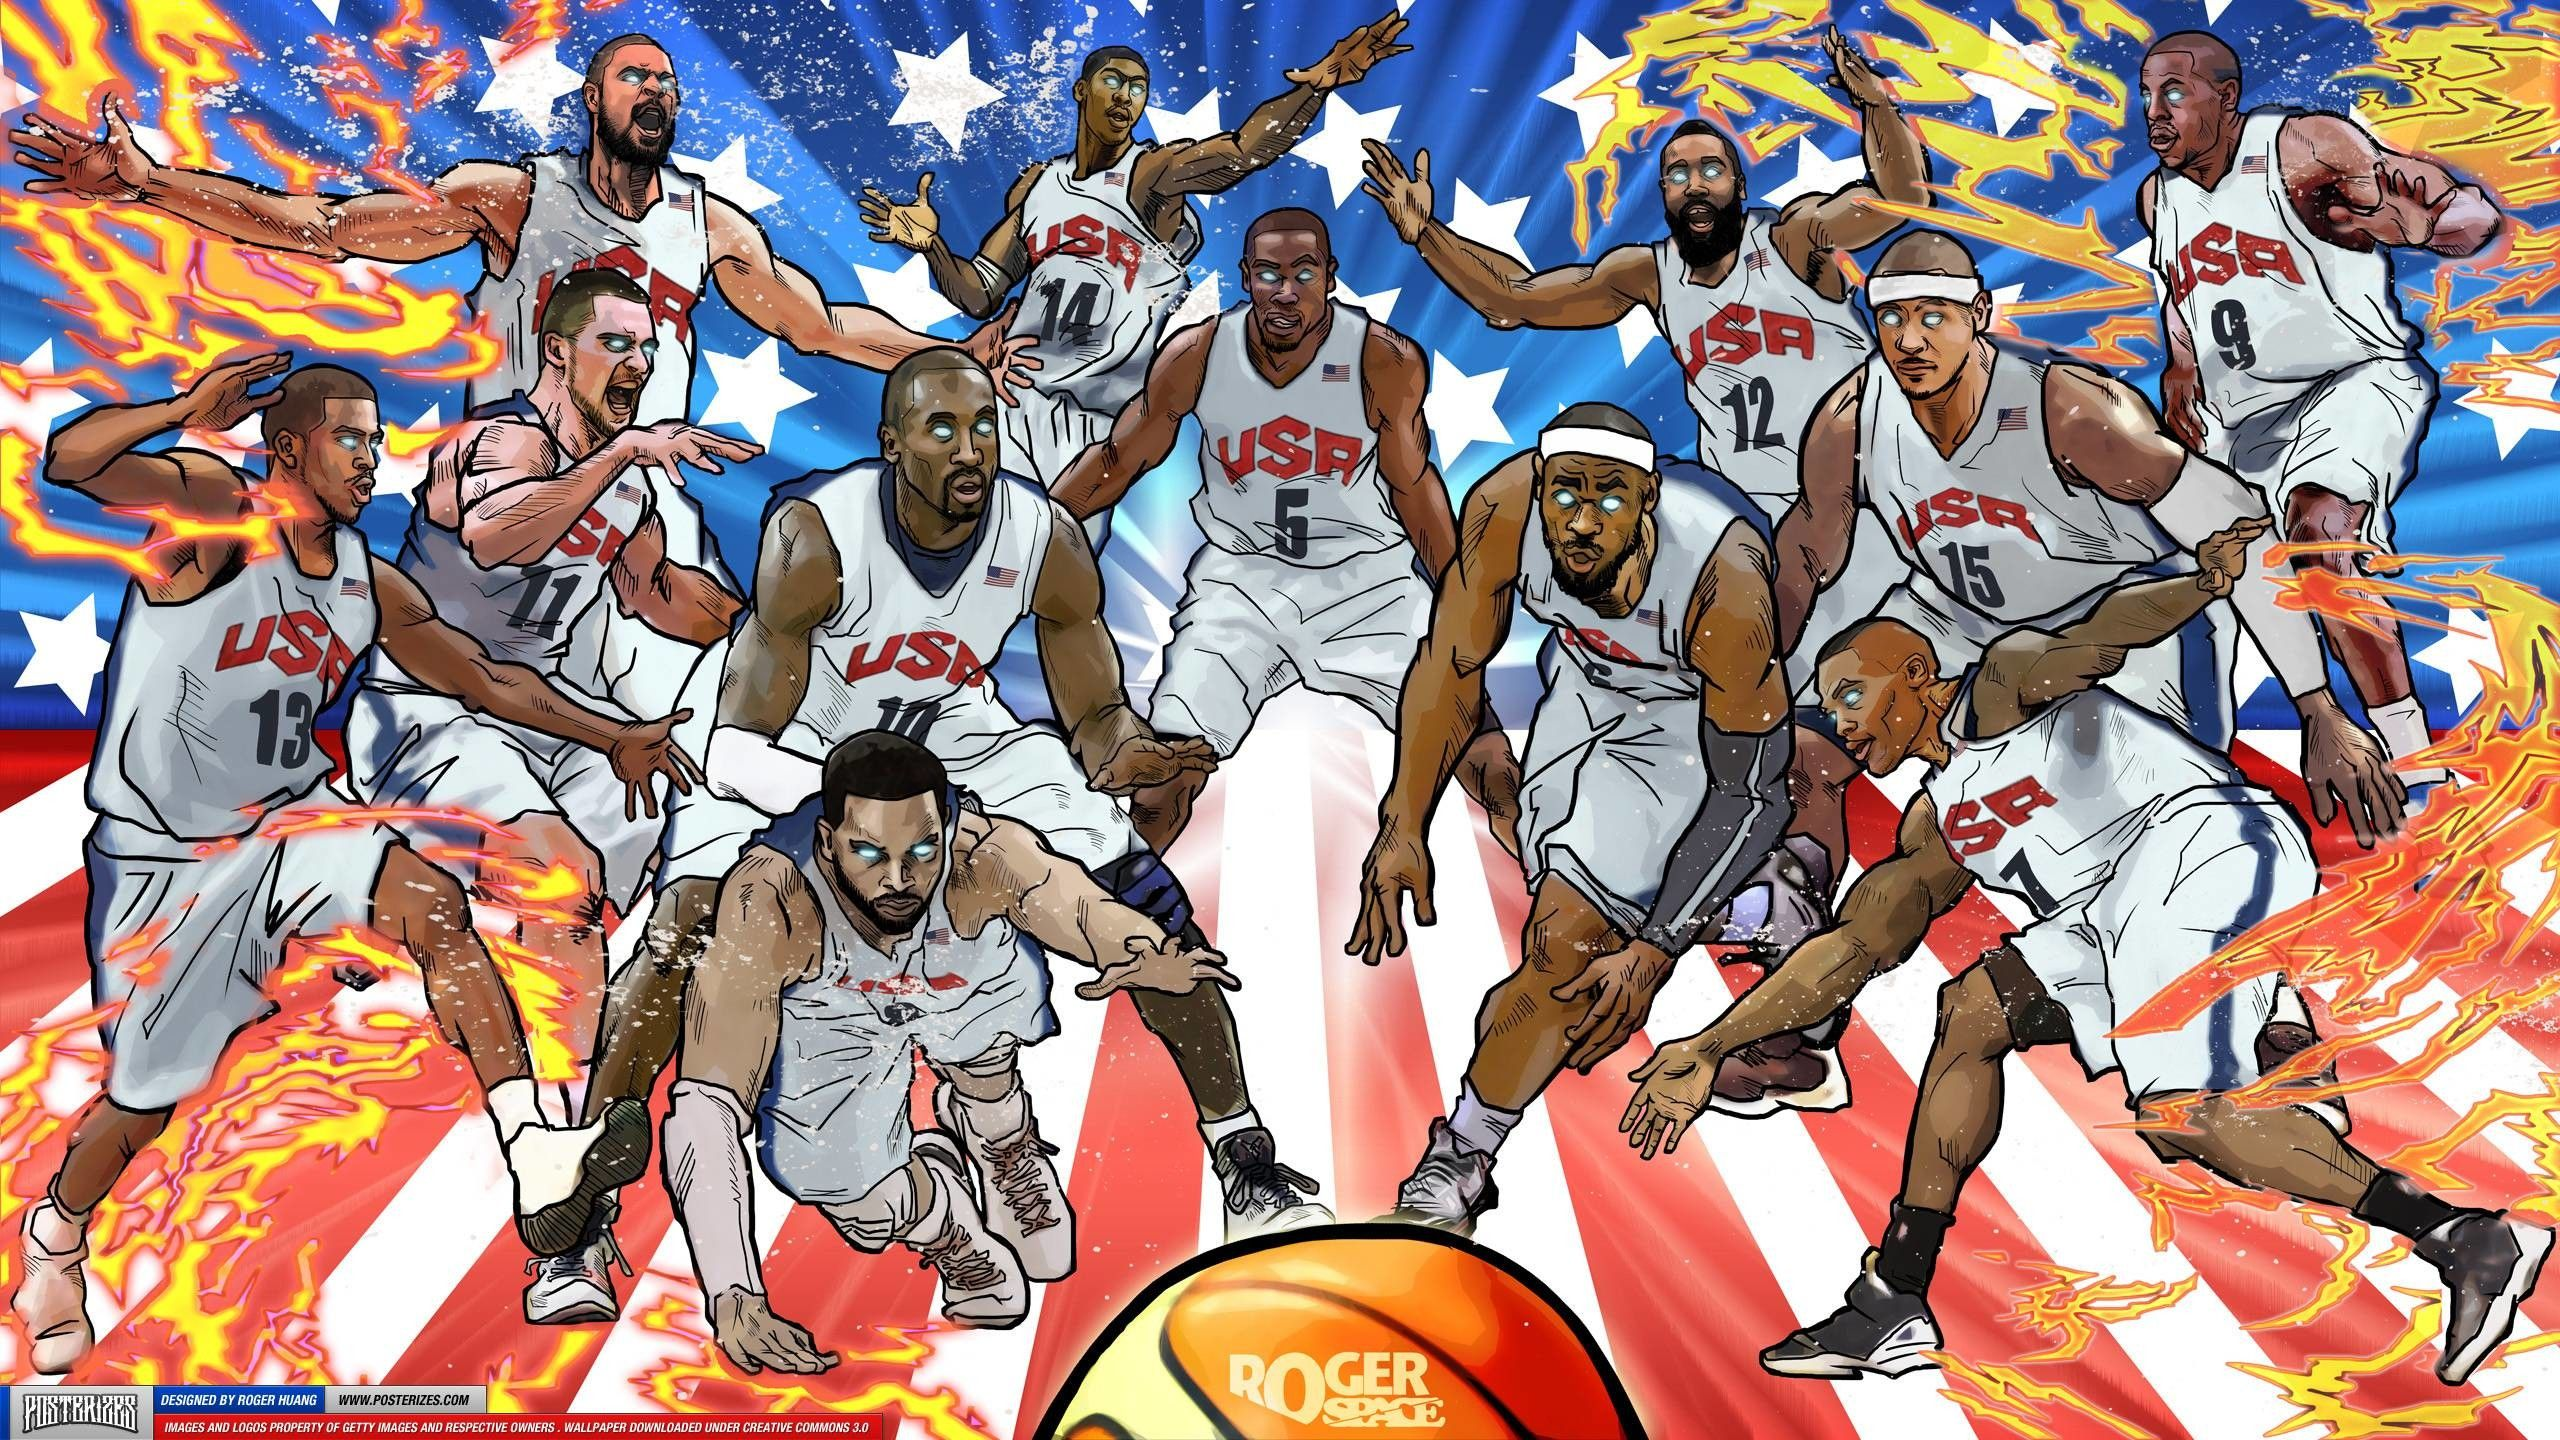 Pin By Felicia Wendt On Deportes Nba Wallpapers Team Wallpaper Basketball Canvas